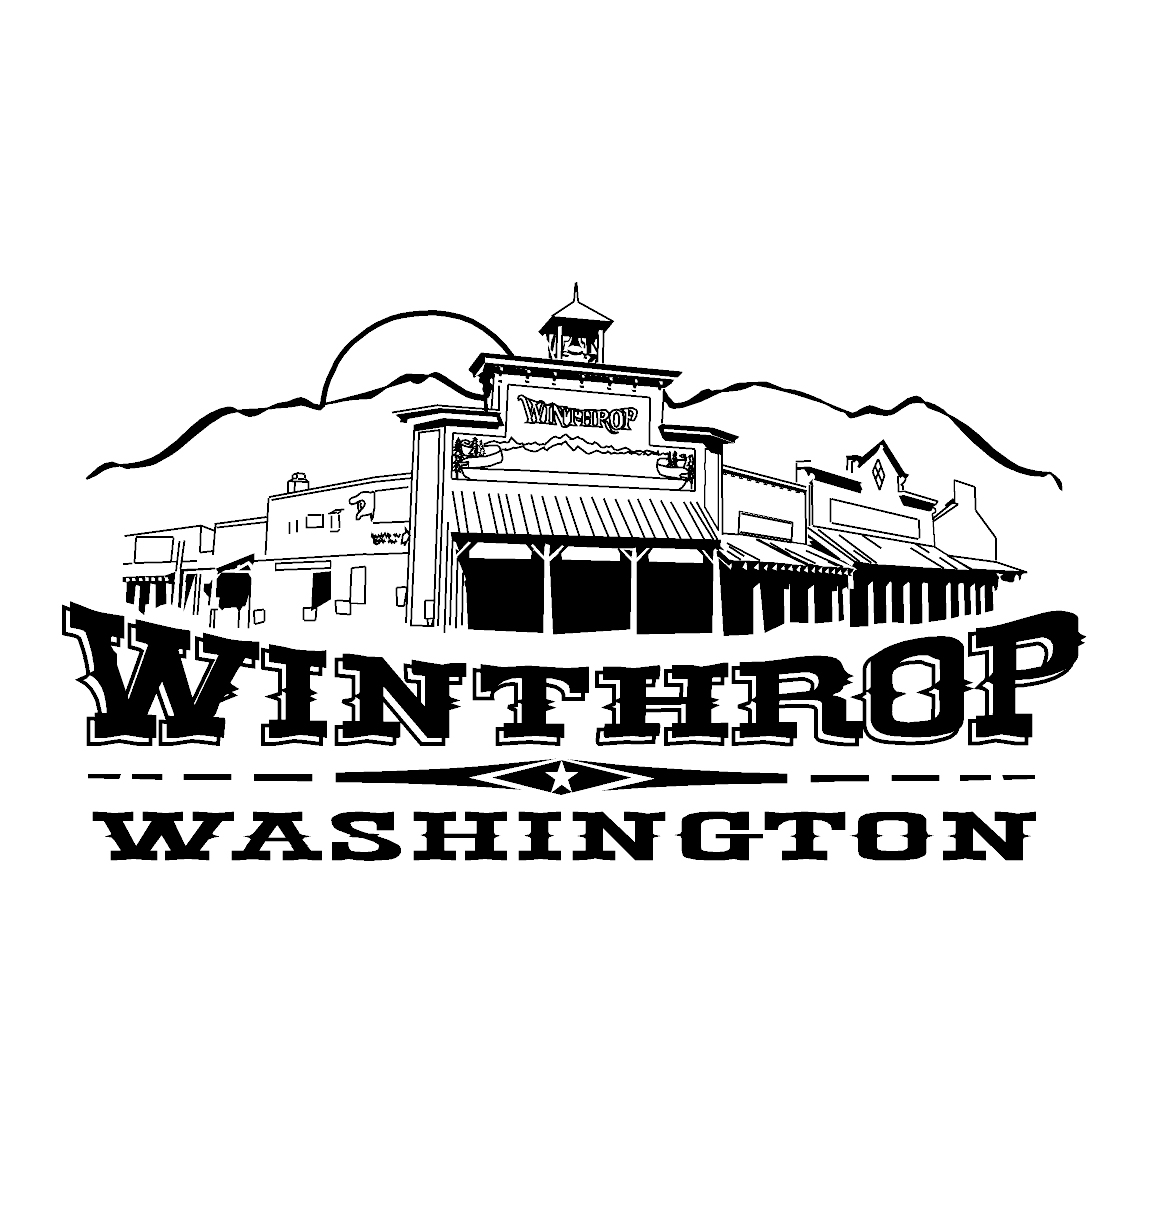 Winthrop Washington logo